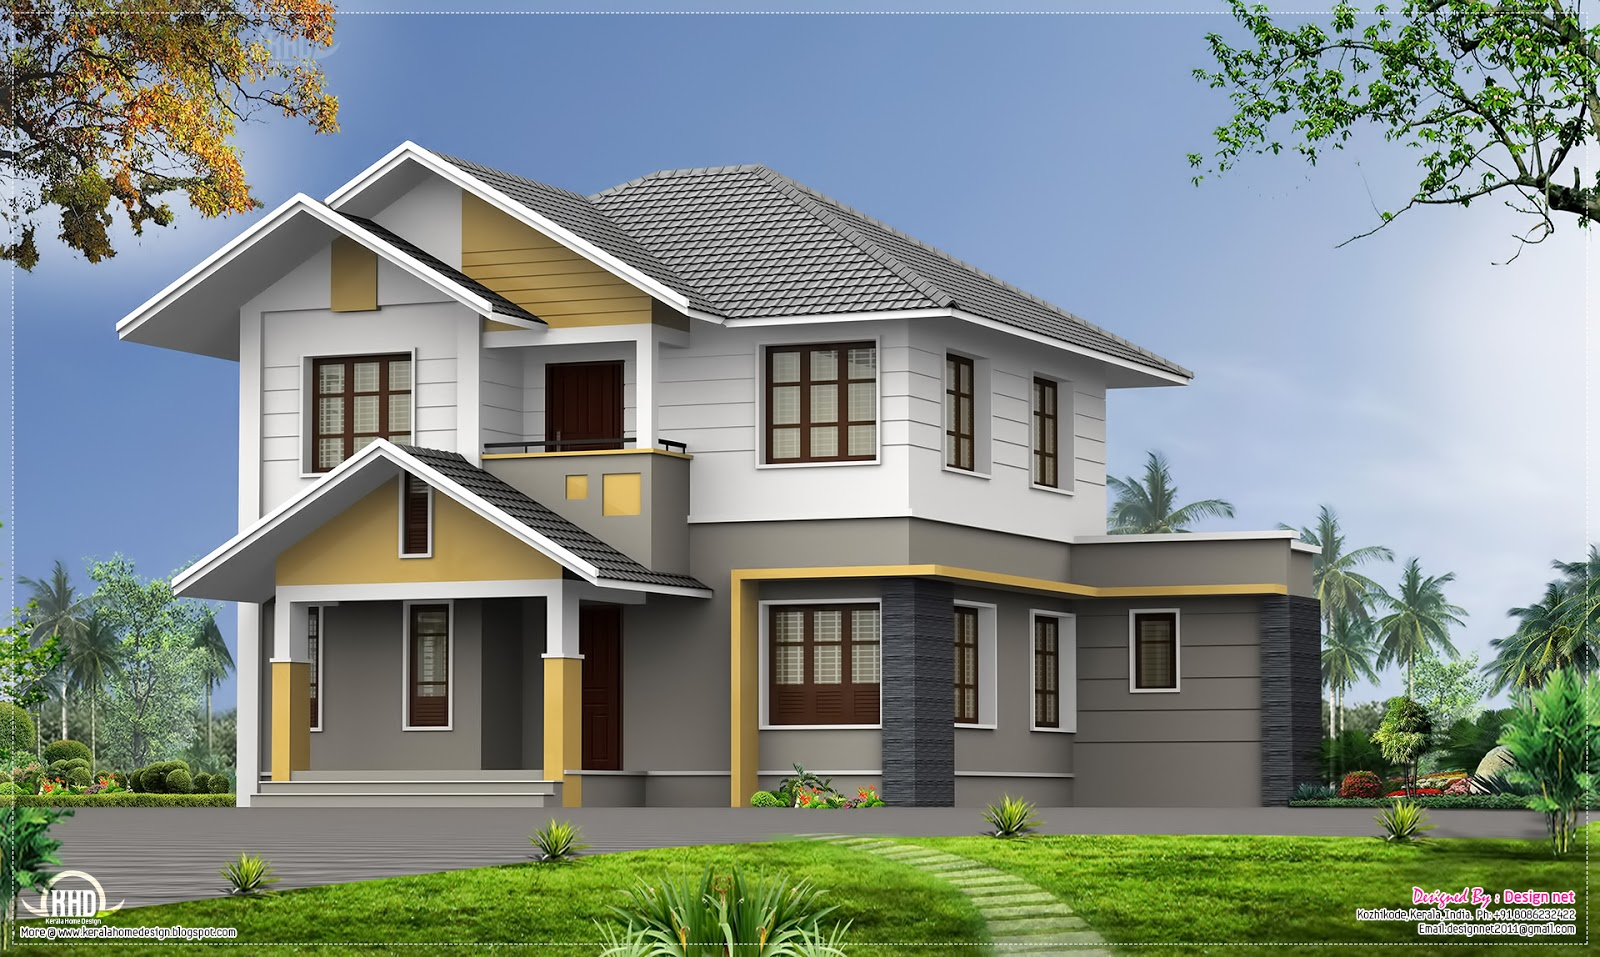 Home plans 2000 sq feet joy studio design gallery best 2000 sq ft house images